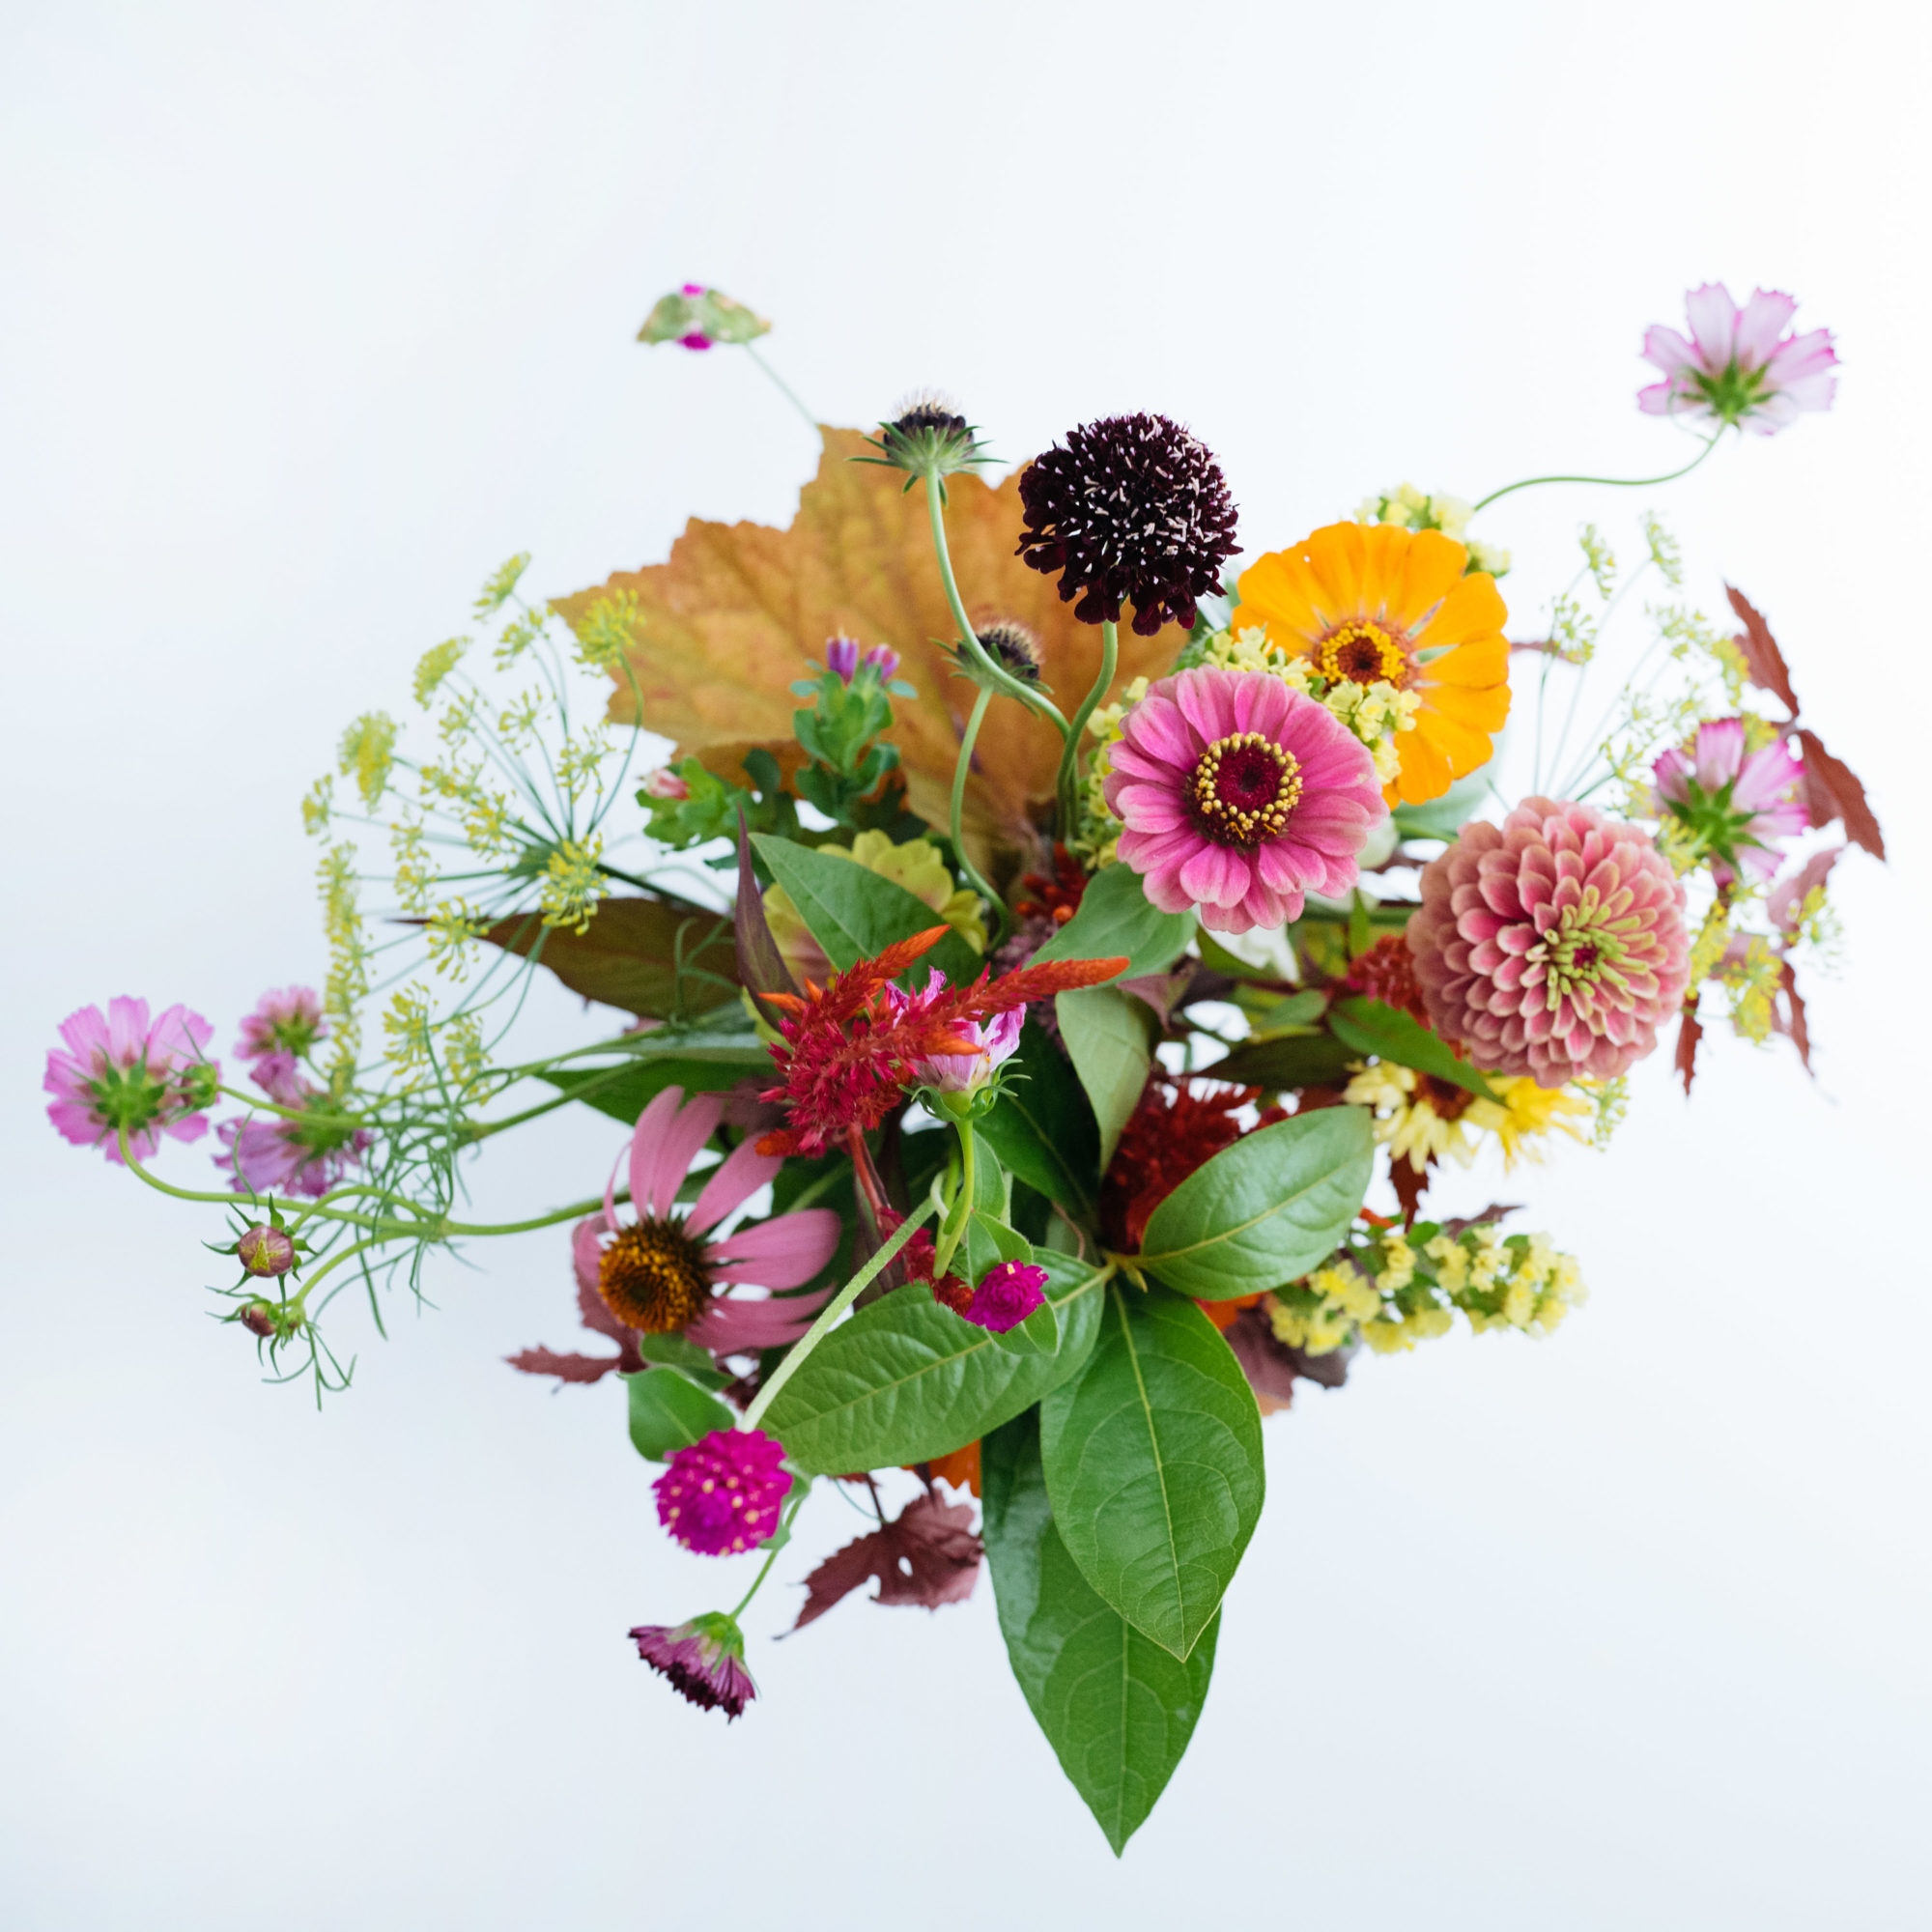 a bouquet of wild flowers, not wildflowers from above on a white background